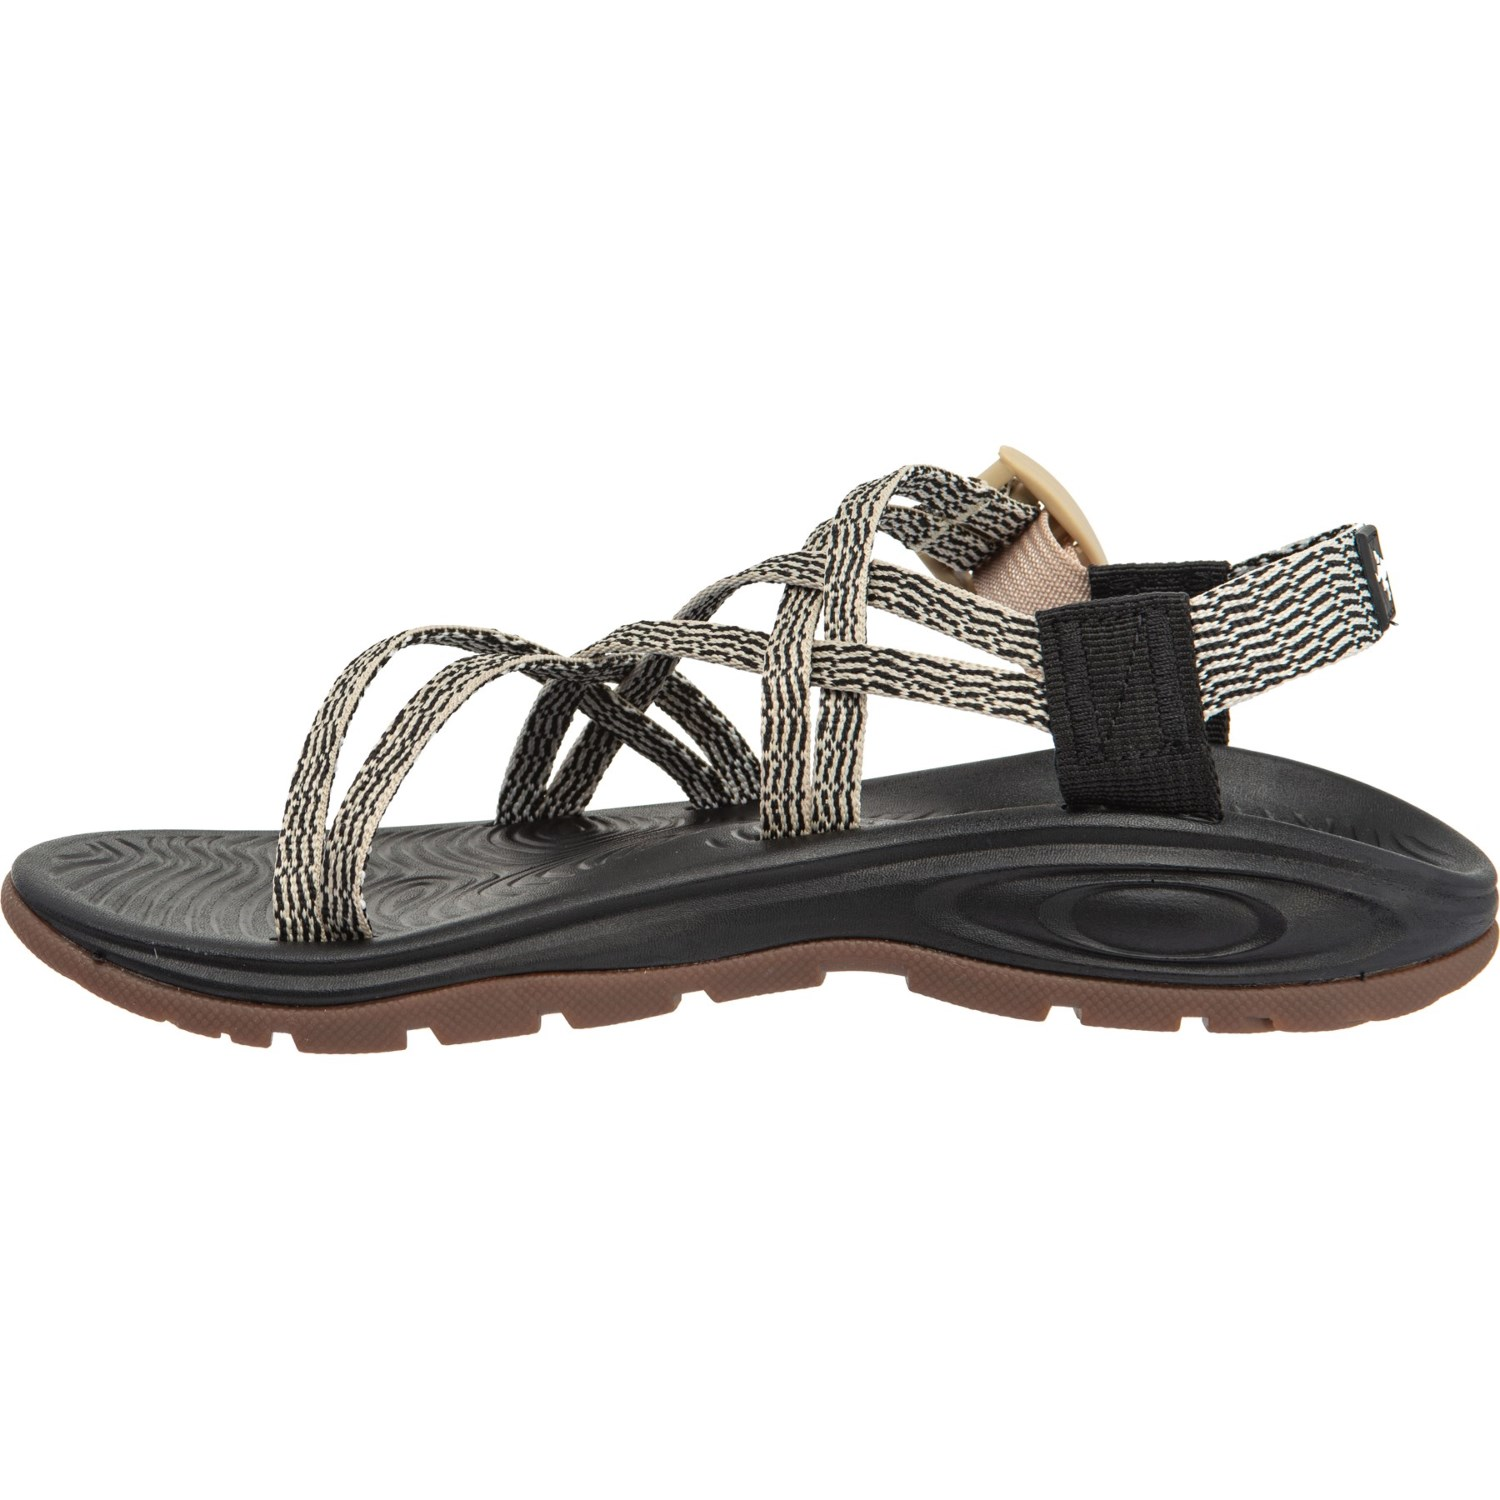 32384ea98dff Chaco Zvolv X Sport Sandals (For Women) - Save 40%